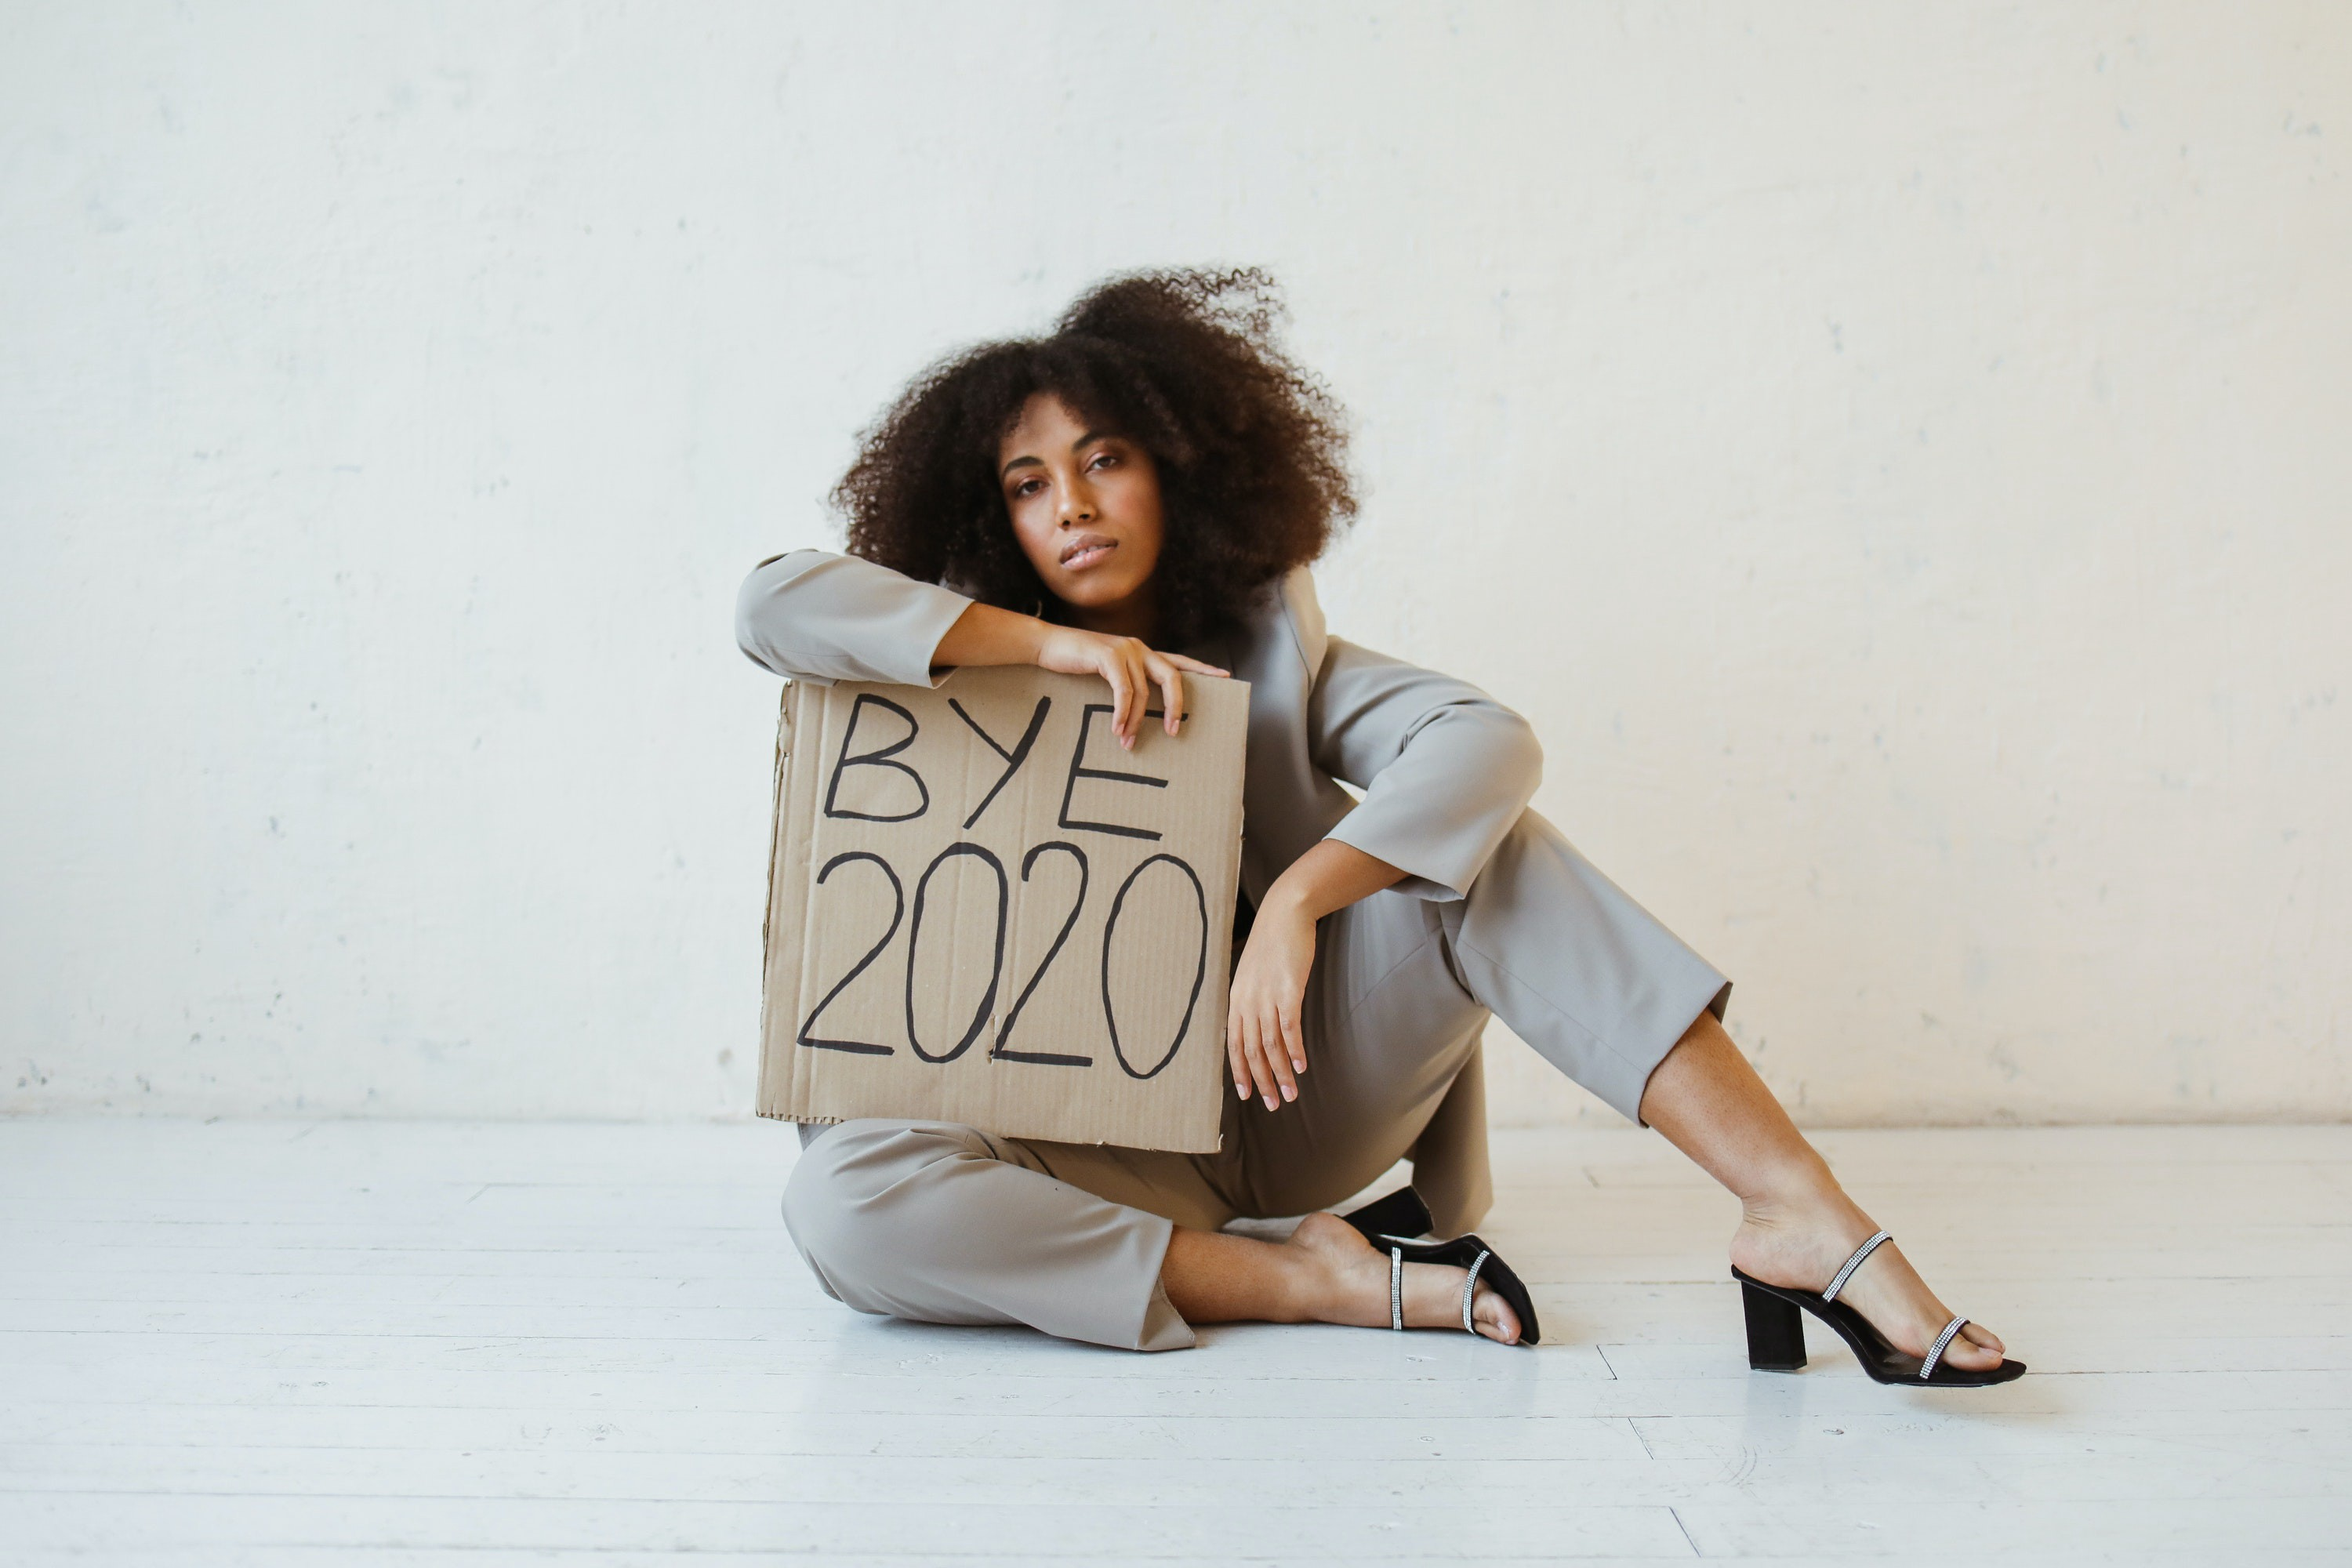 2020 is not a wasted year, look back but don't dwell on it to make a better future for ourselves